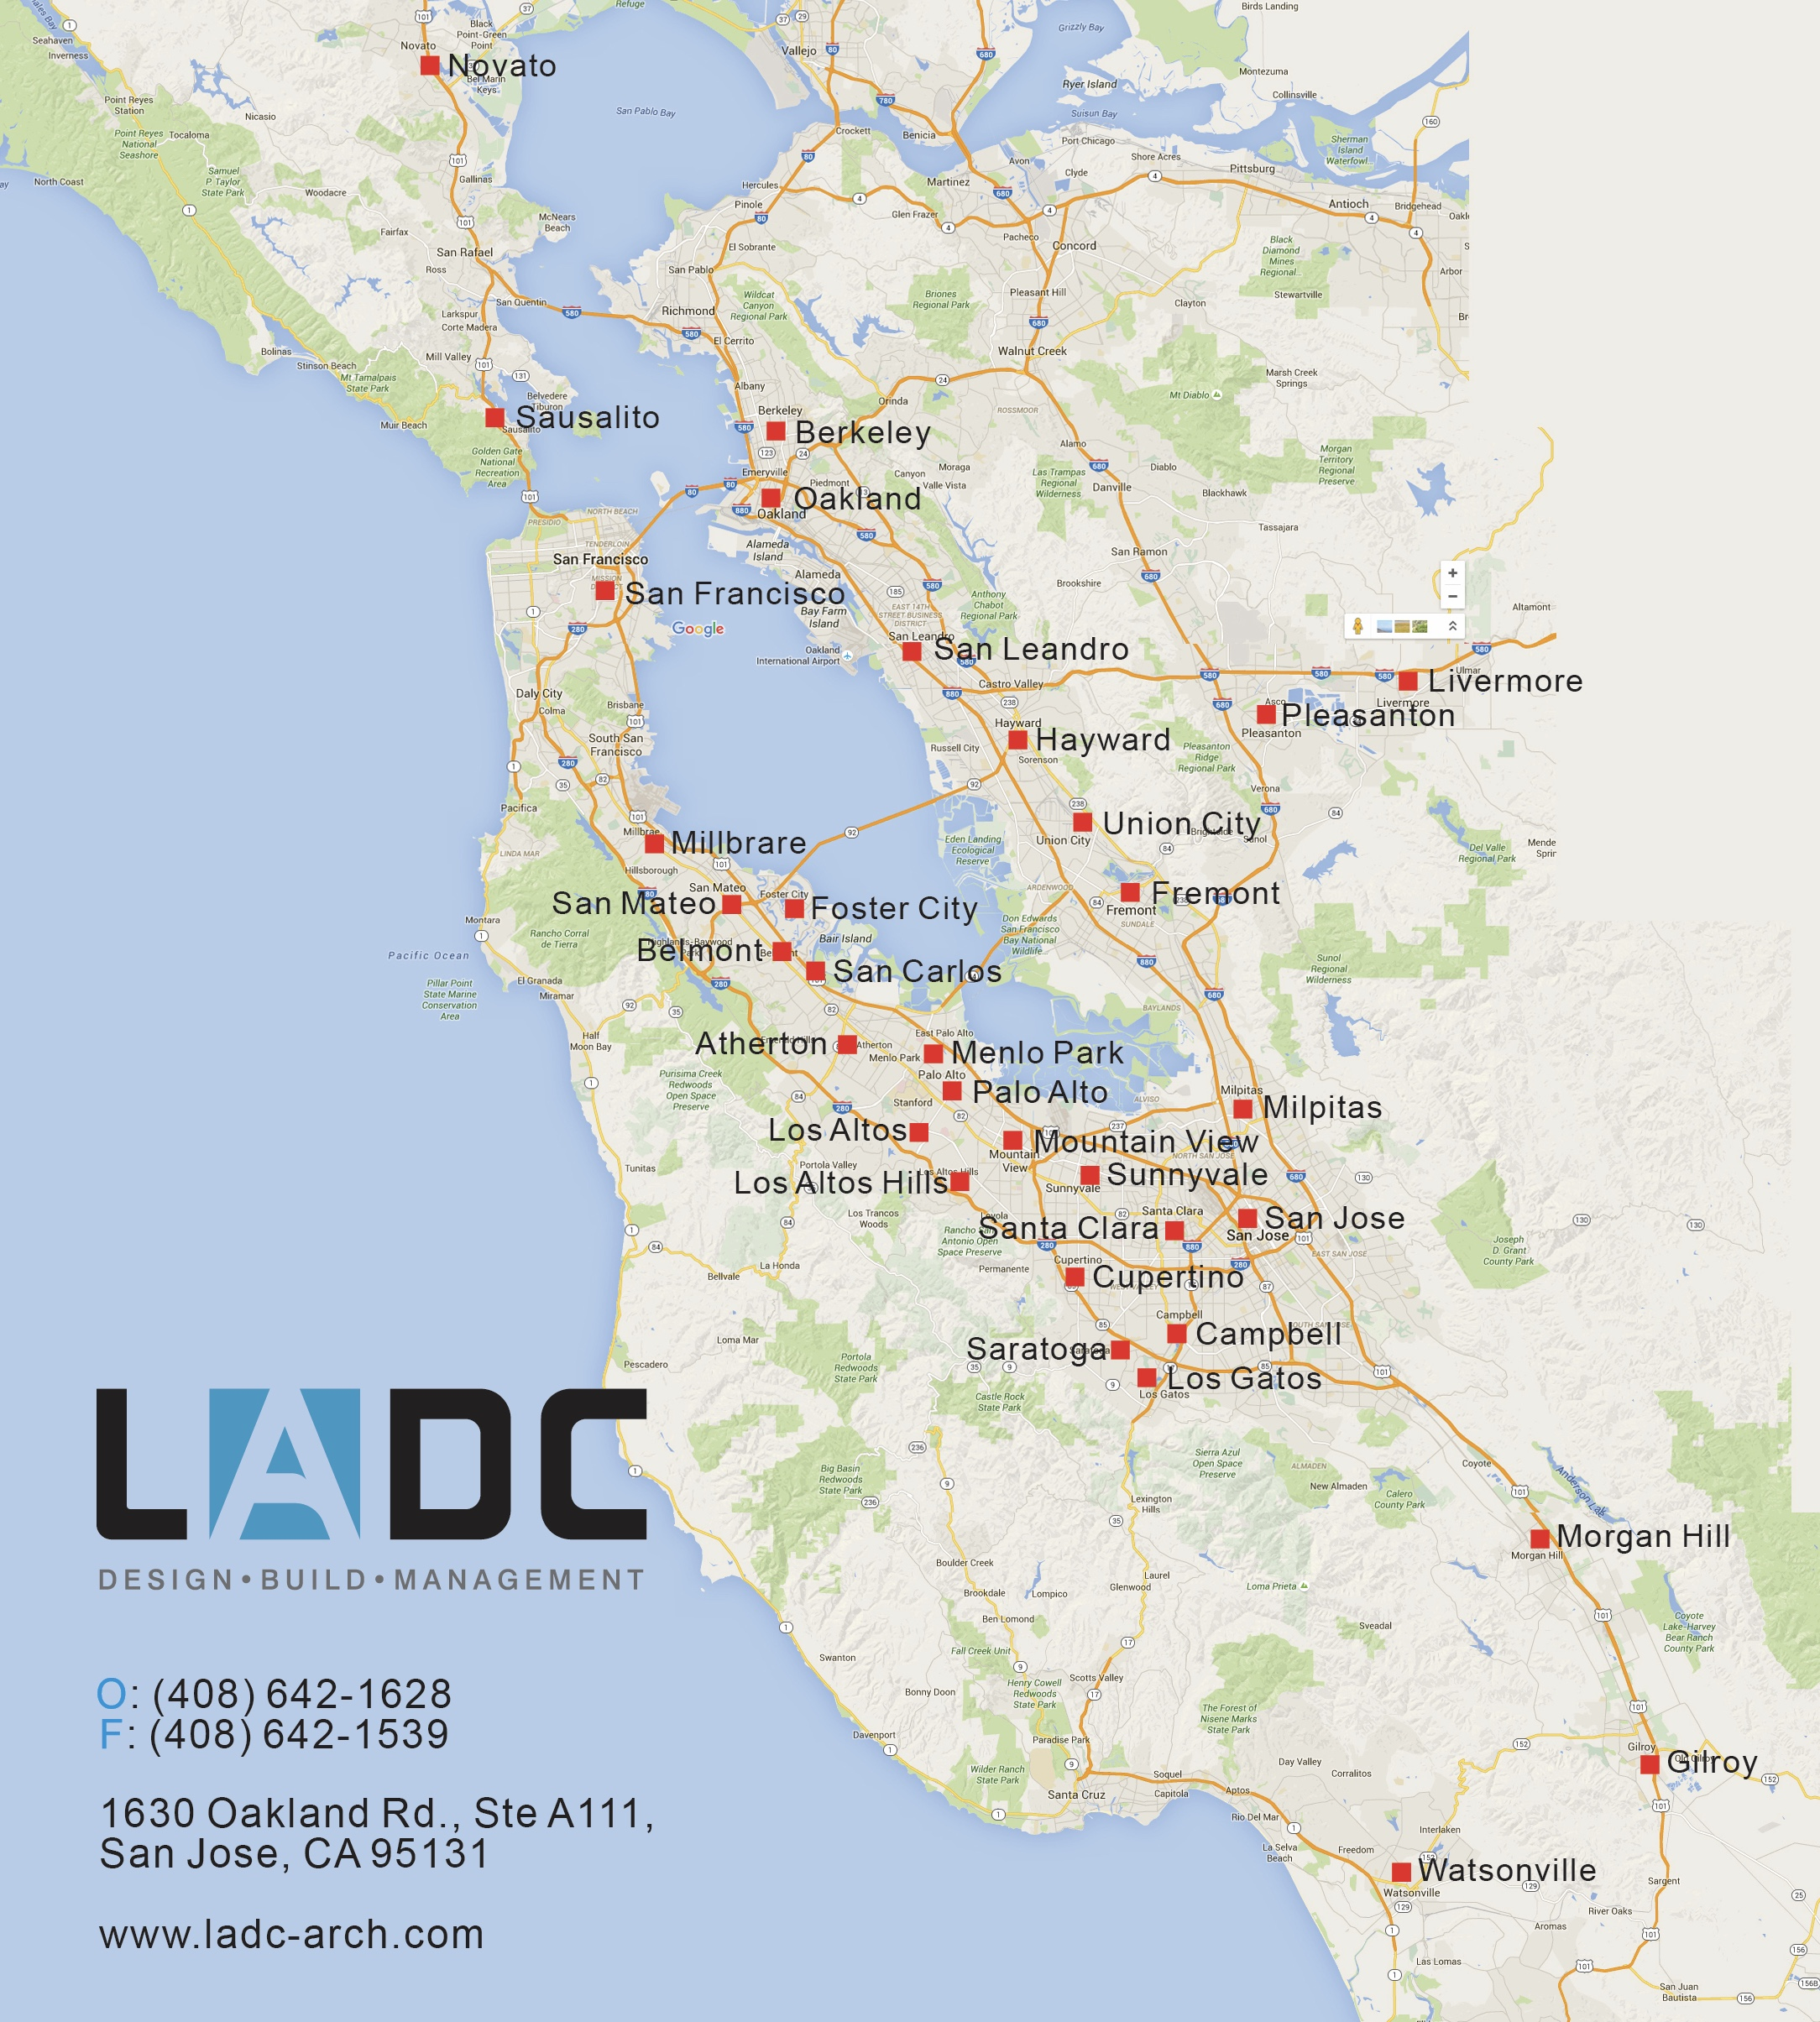 LADC-MAP